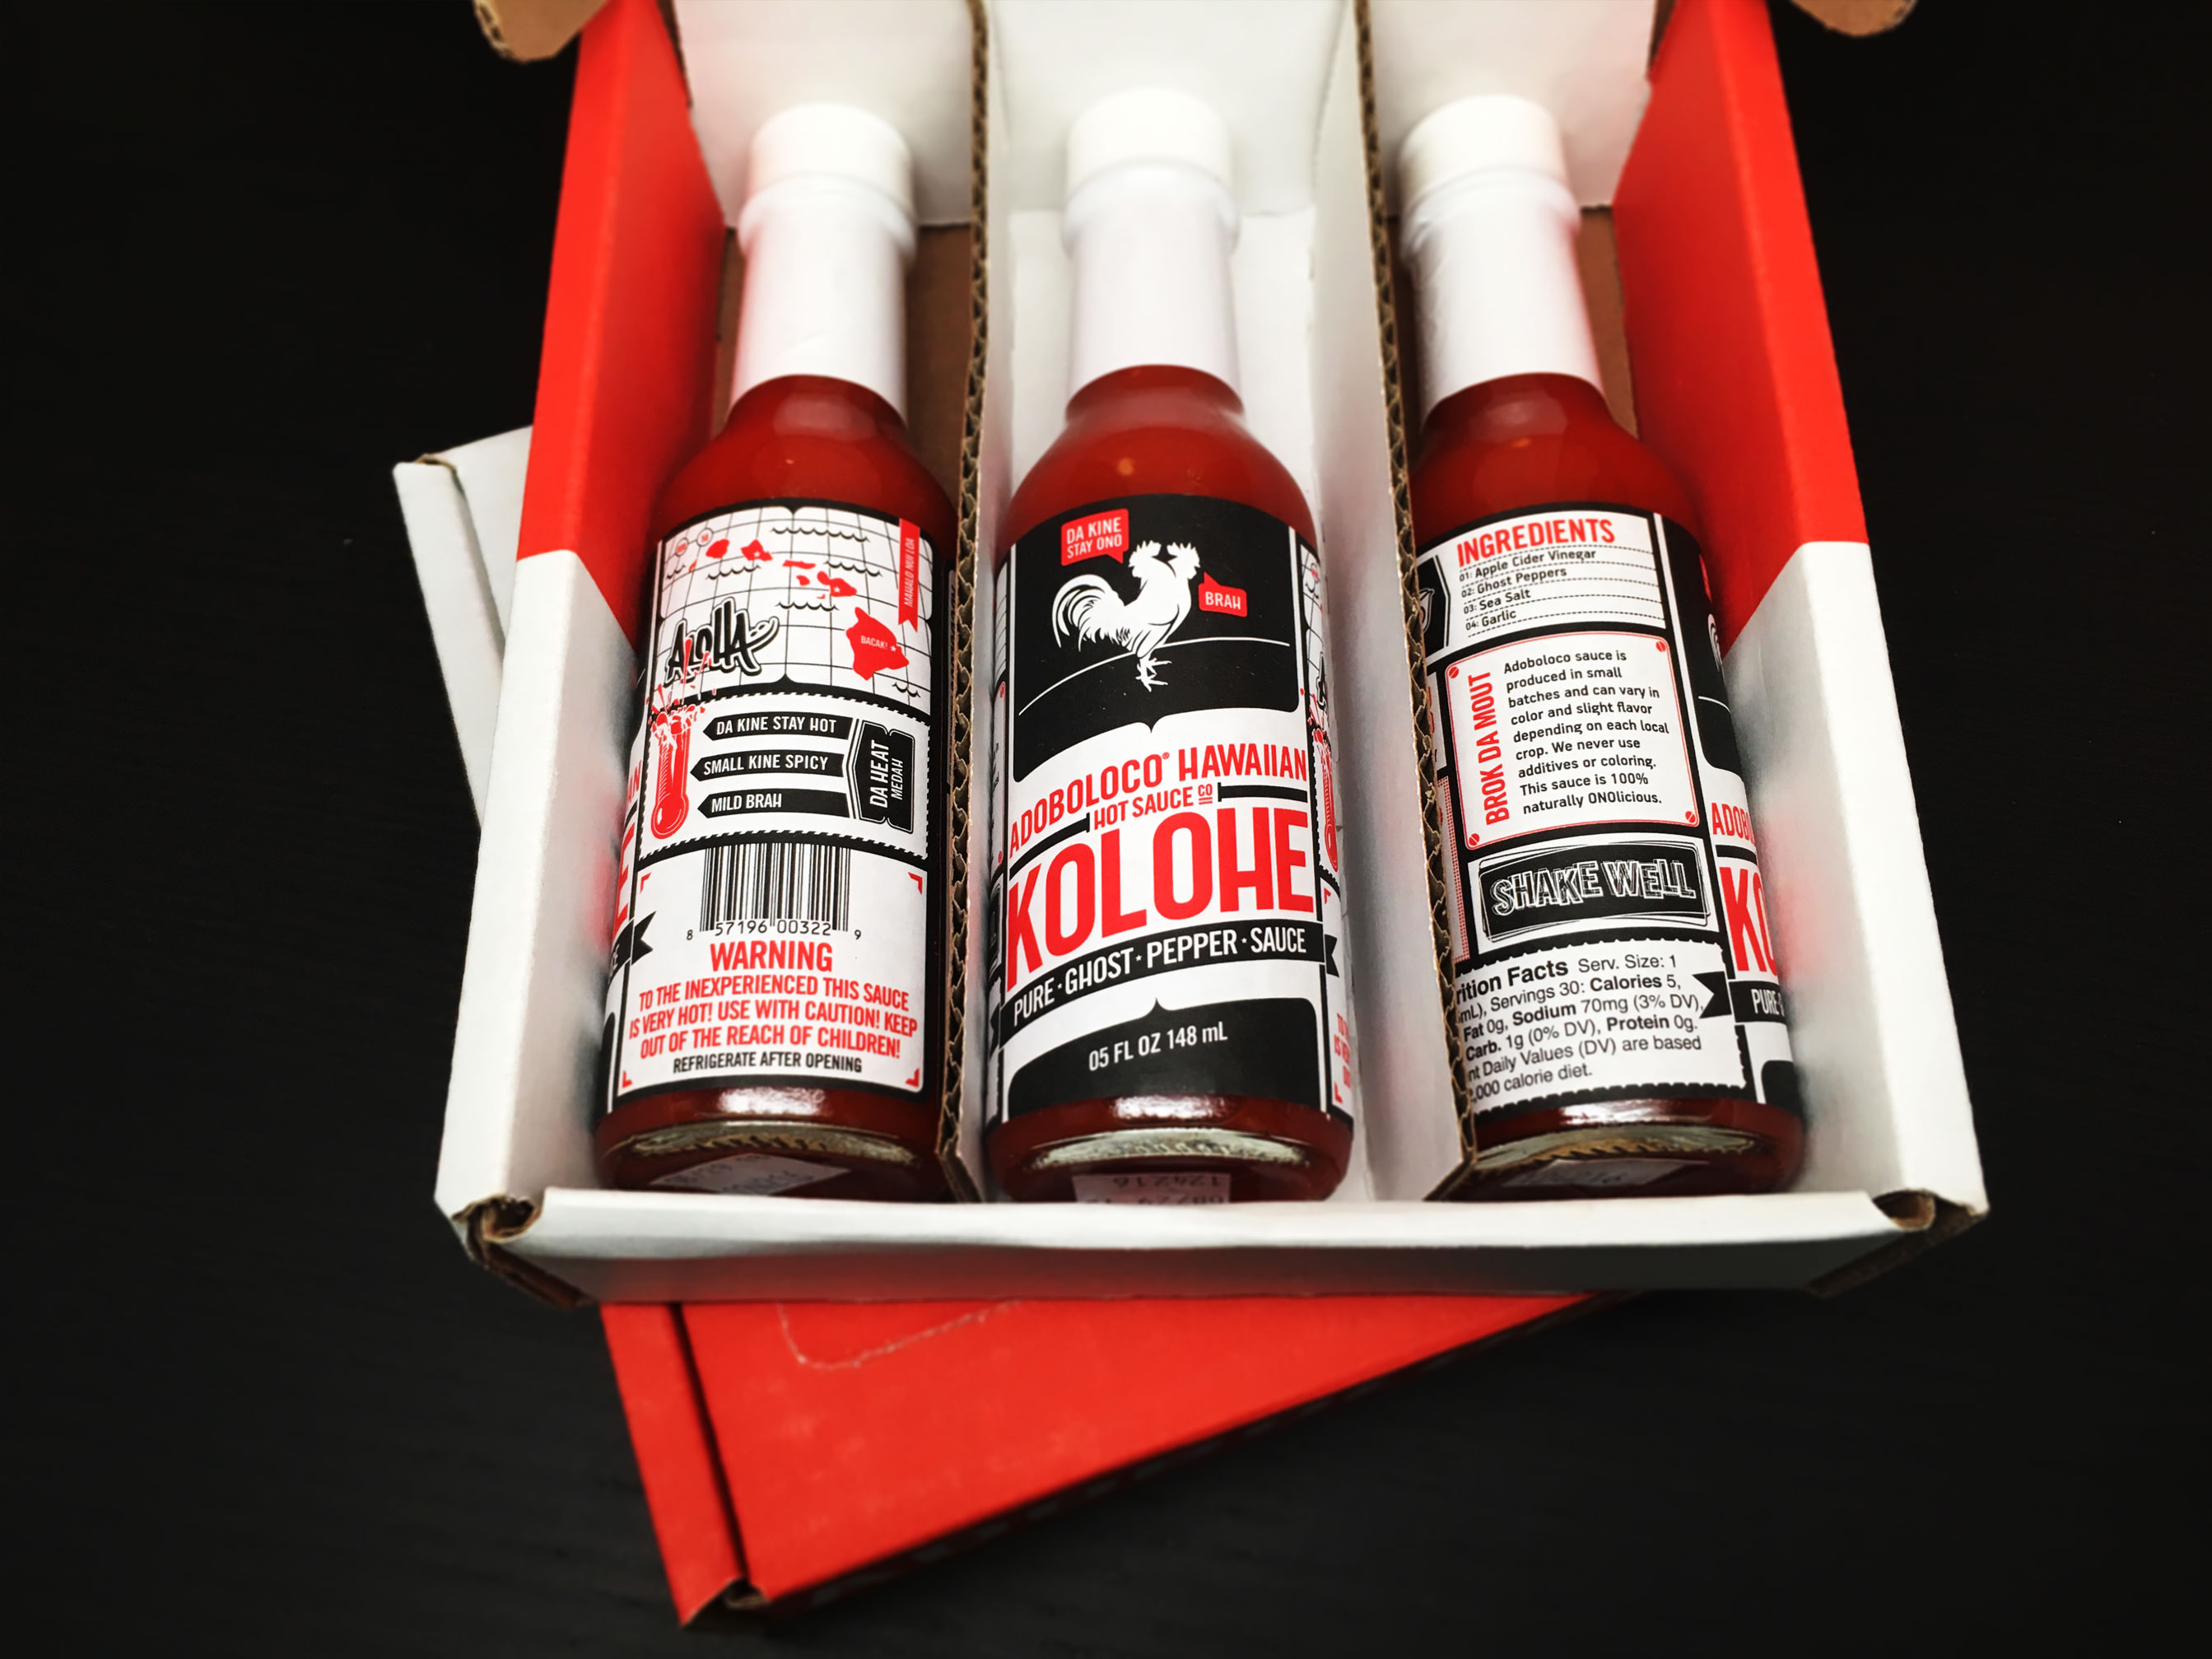 Kolohe Pure Ghost Pepper Hot Sauce Gift Pack